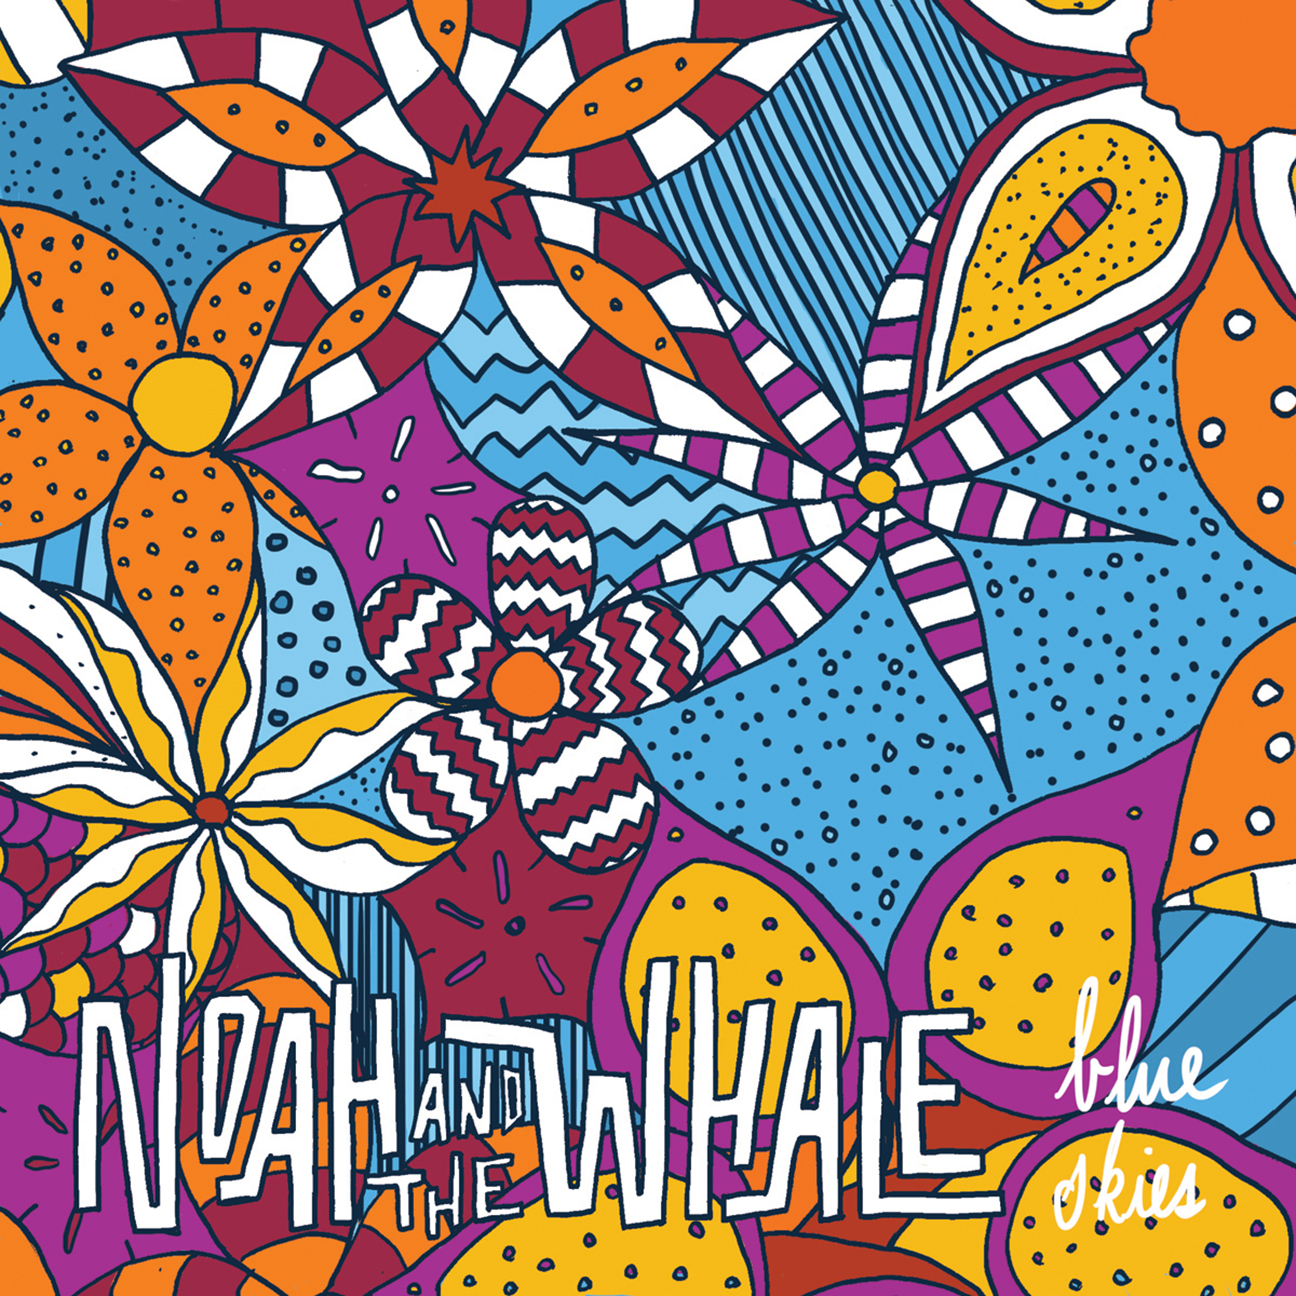 noah_and_the_whale_album_art_4.jpg